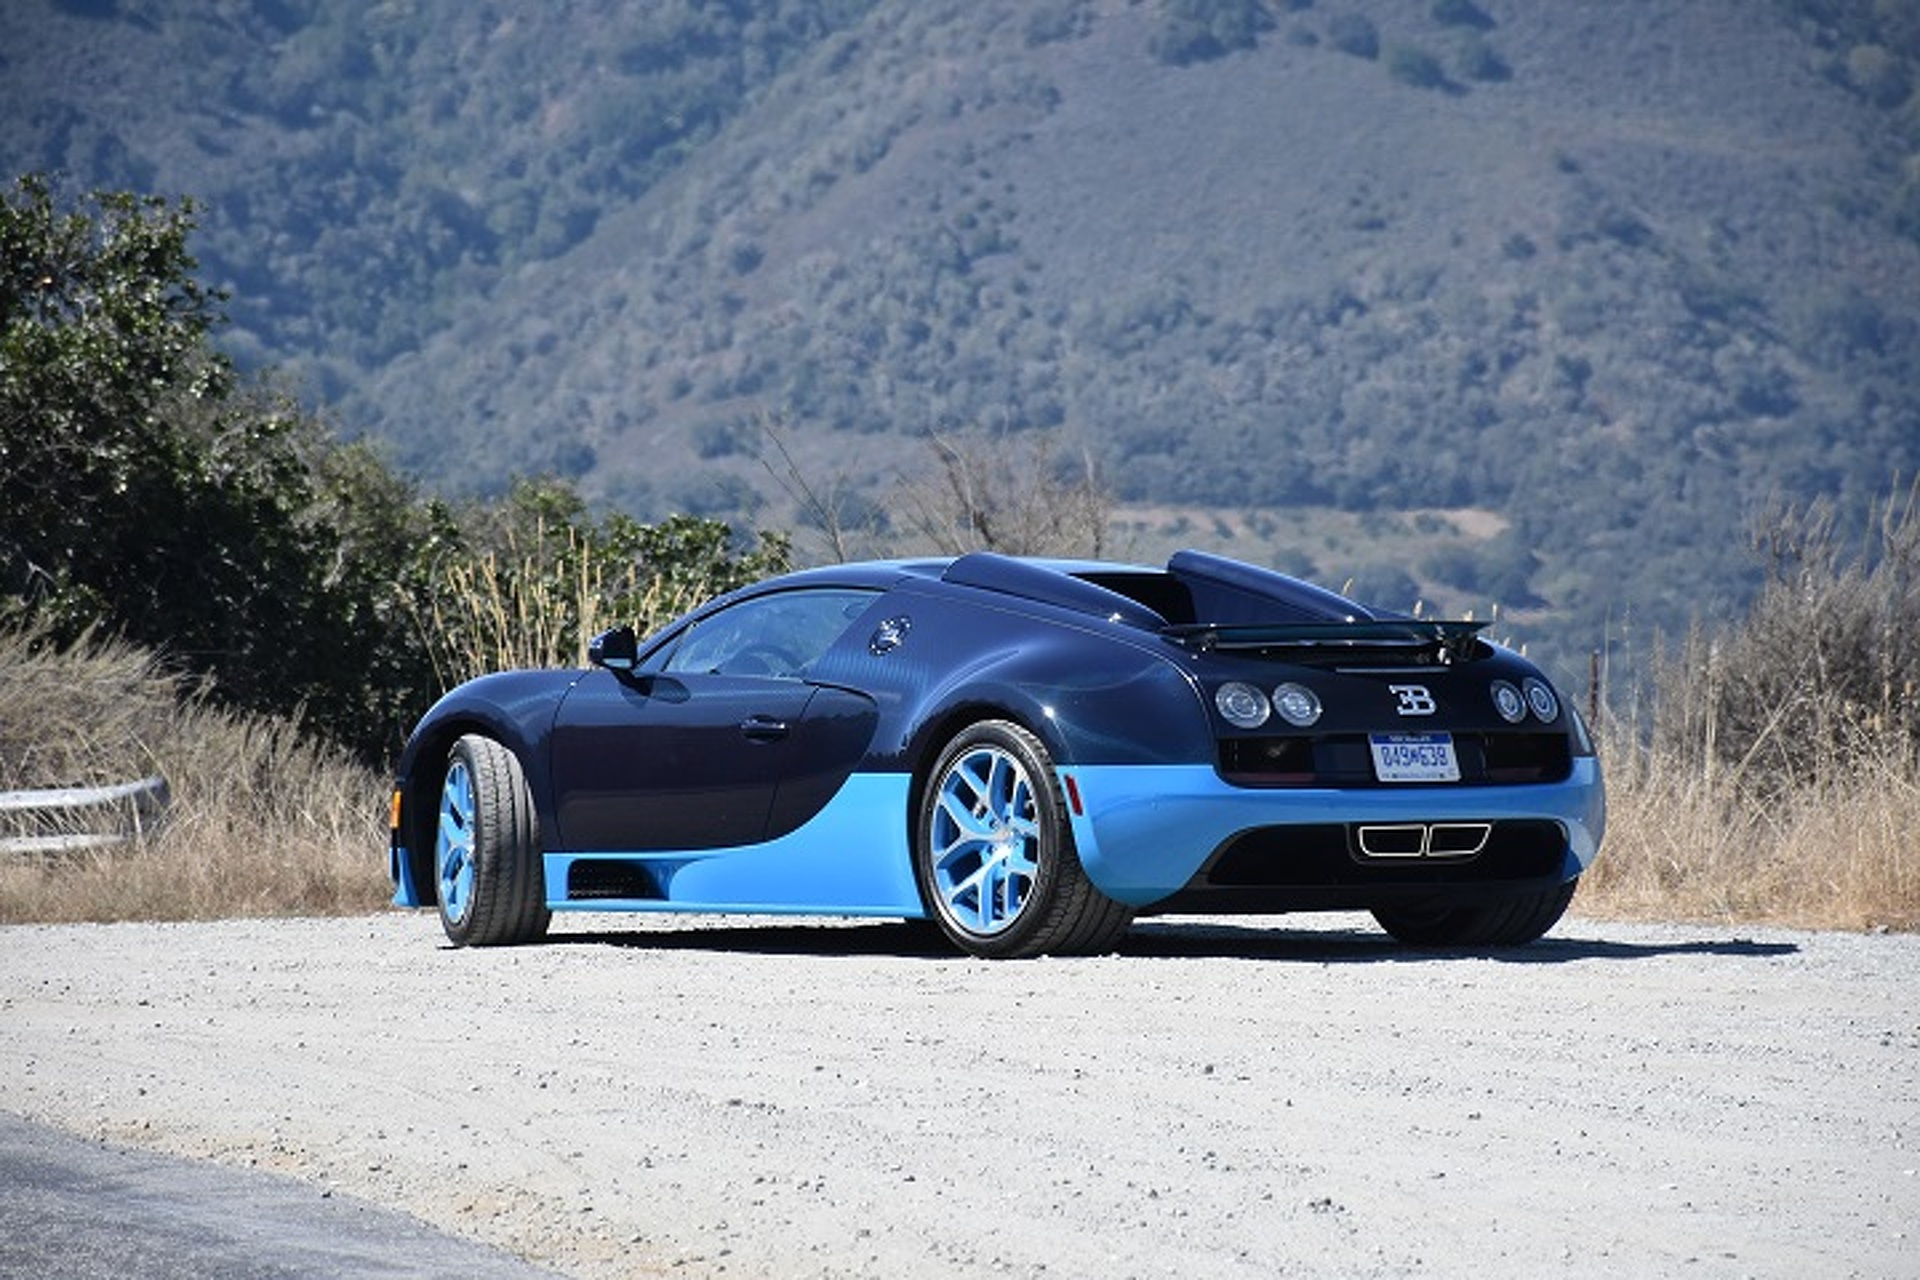 the-bugatti-veyron-is-the-closest-youll-get-to-a-fighter-jet-first-drive Wonderful Bugatti Veyron On Road Price Cars Trend